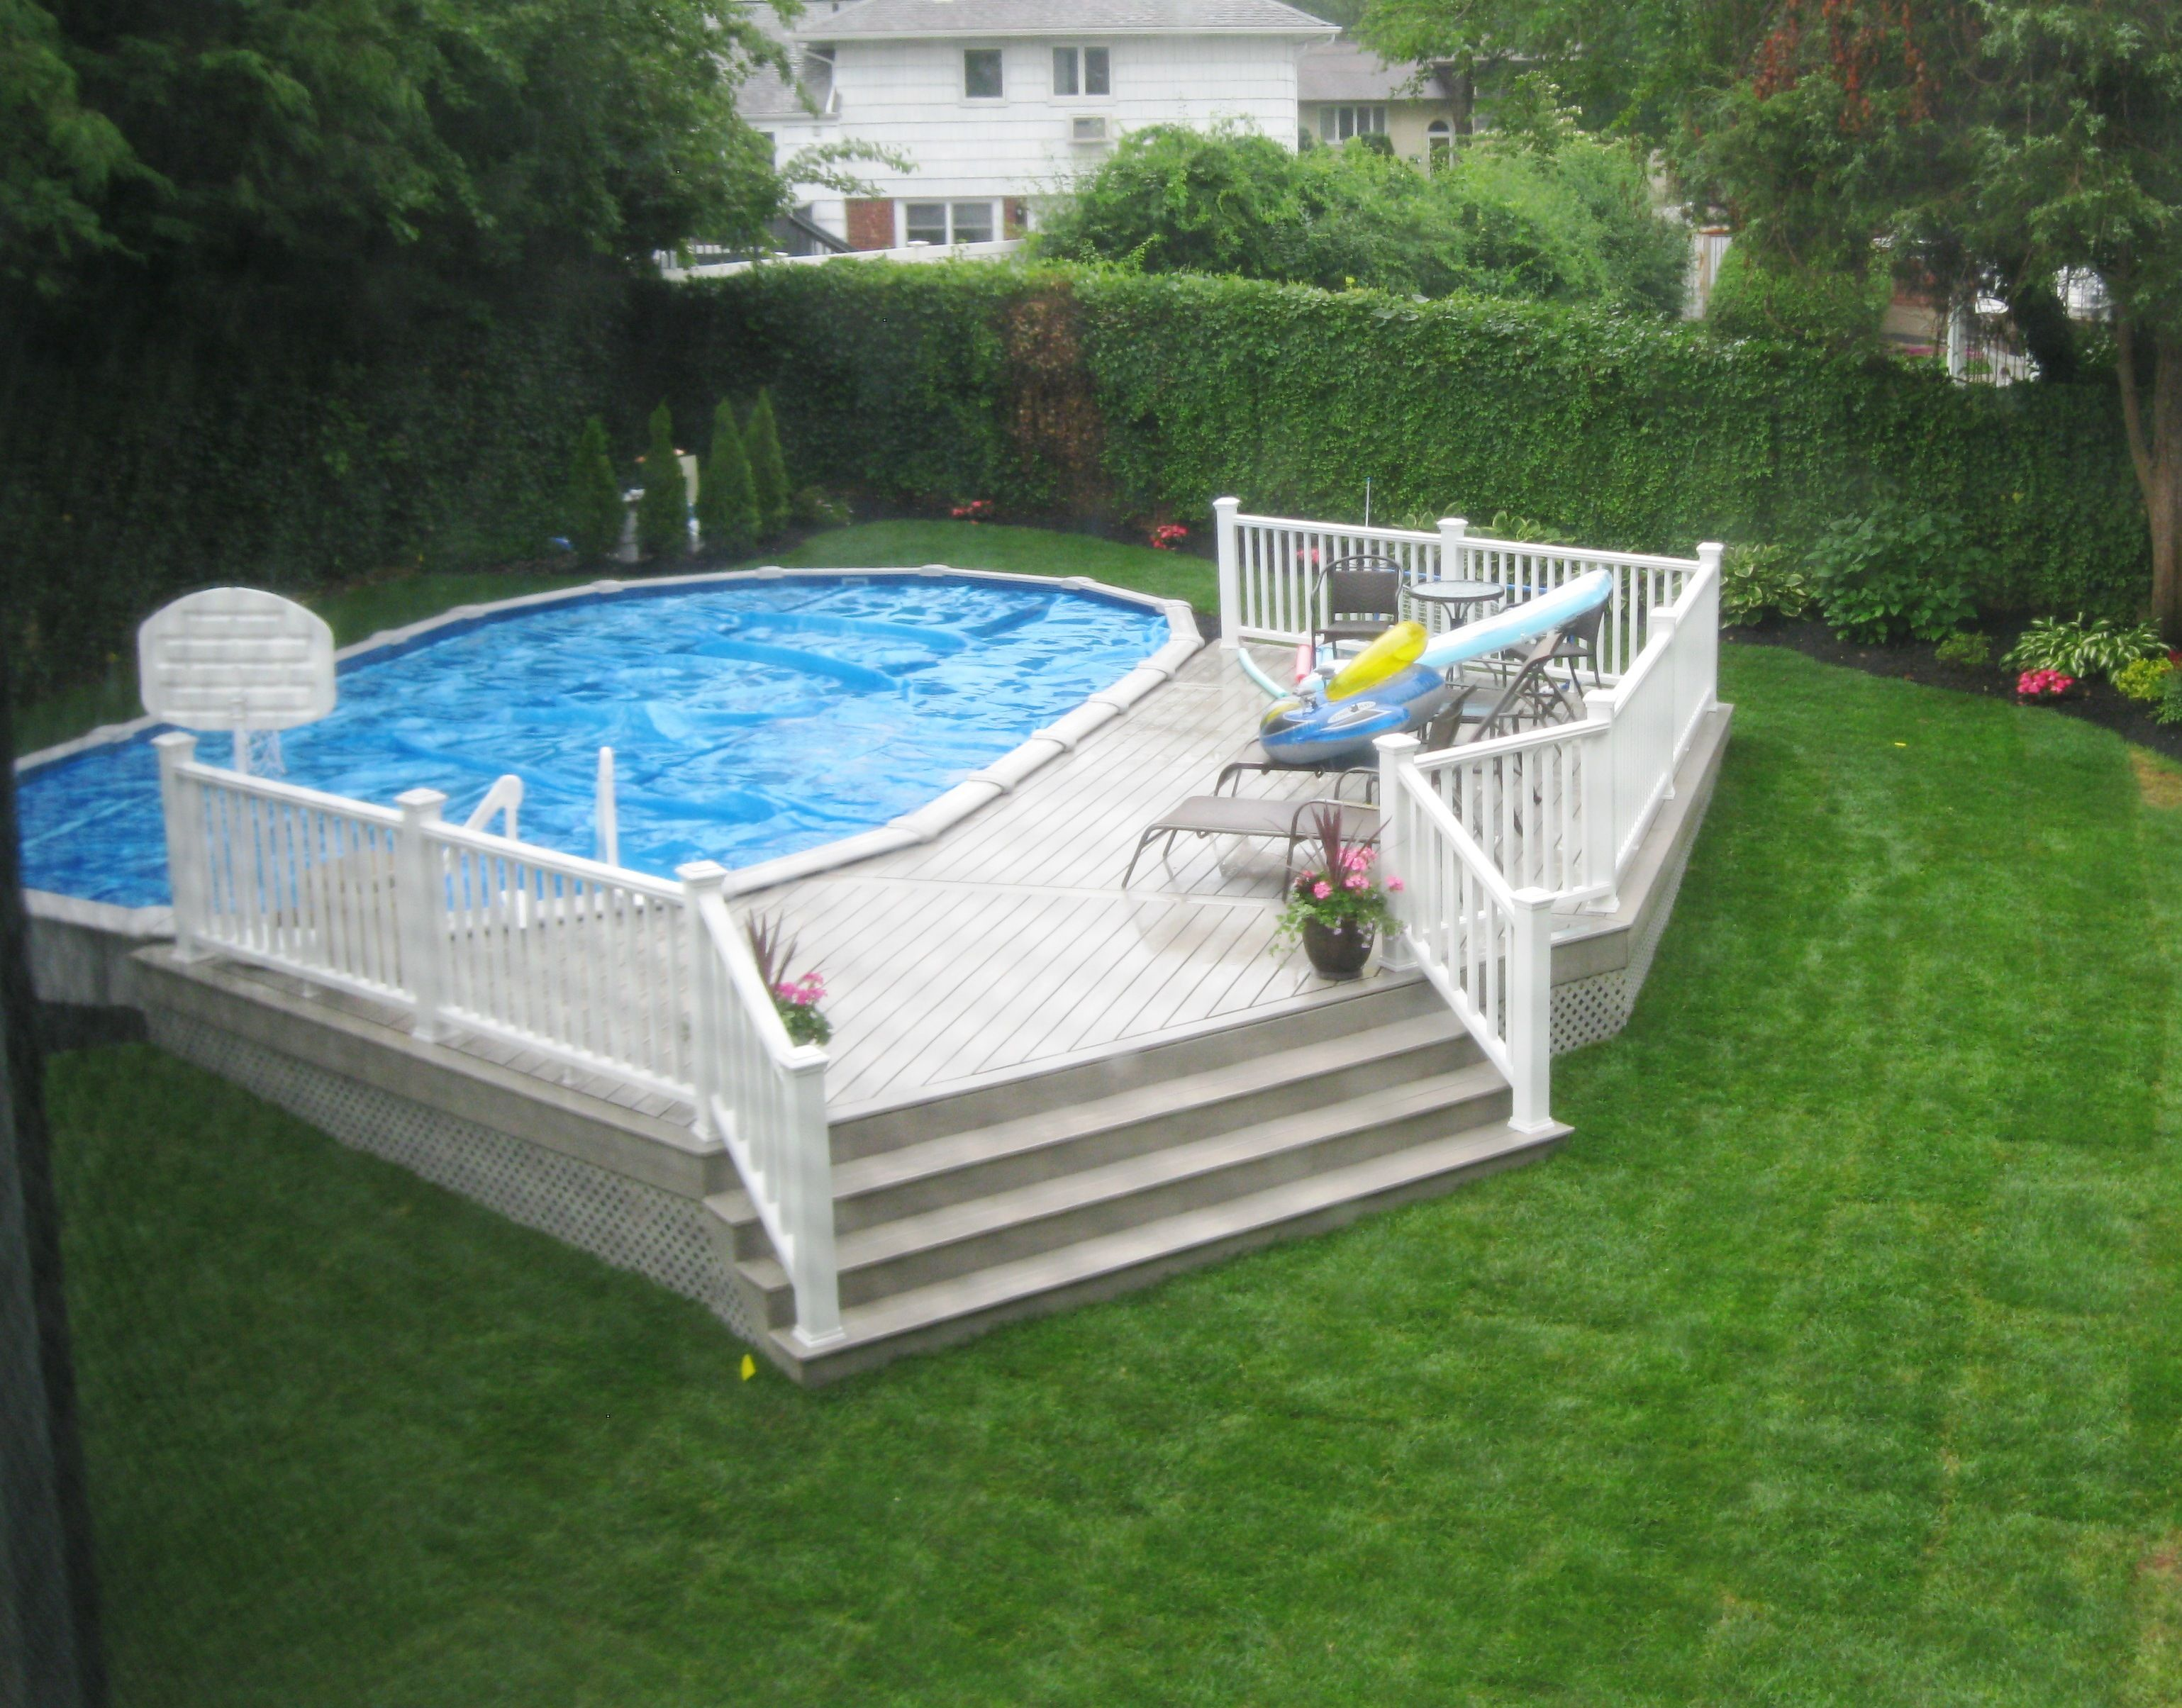 18x33 semi inground pool with deck | Pool | Swimming pool decks ...